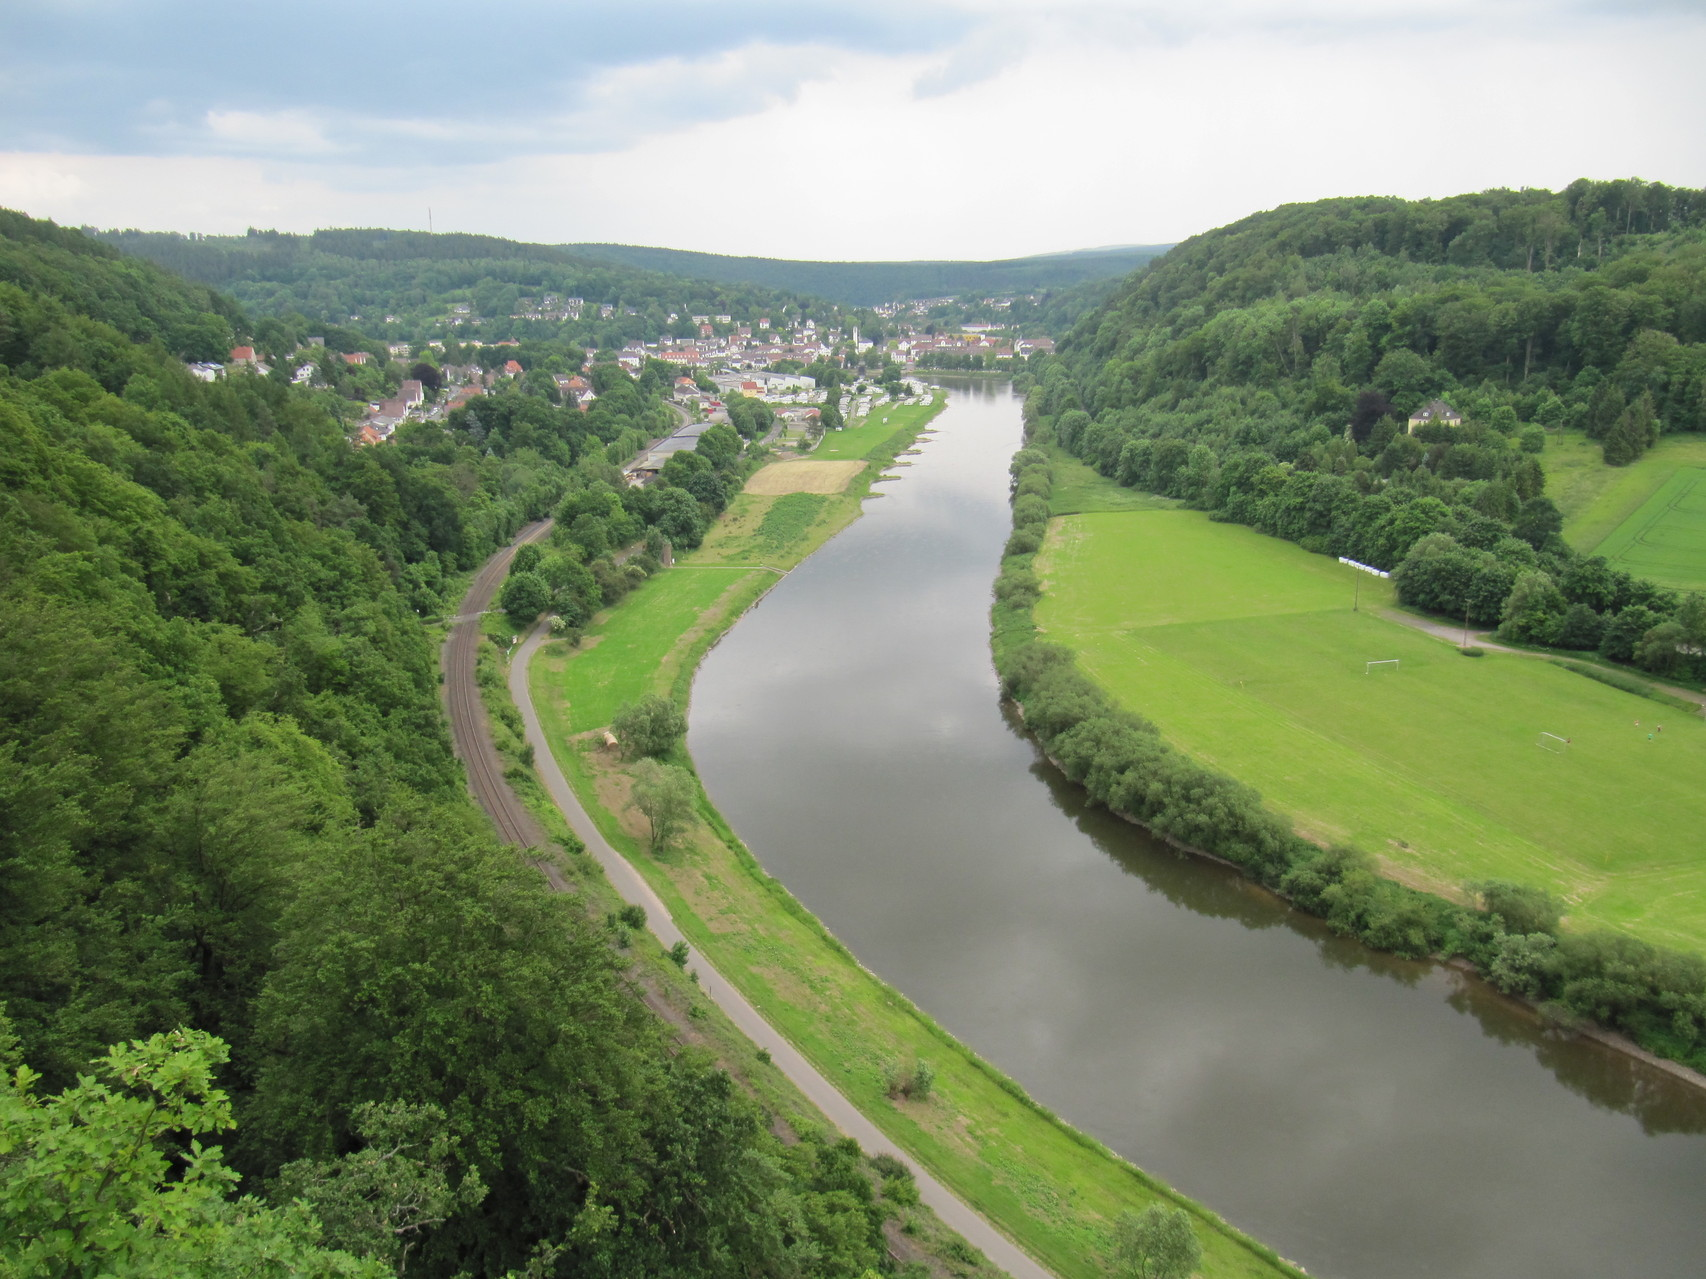 Skywalk an der Weser